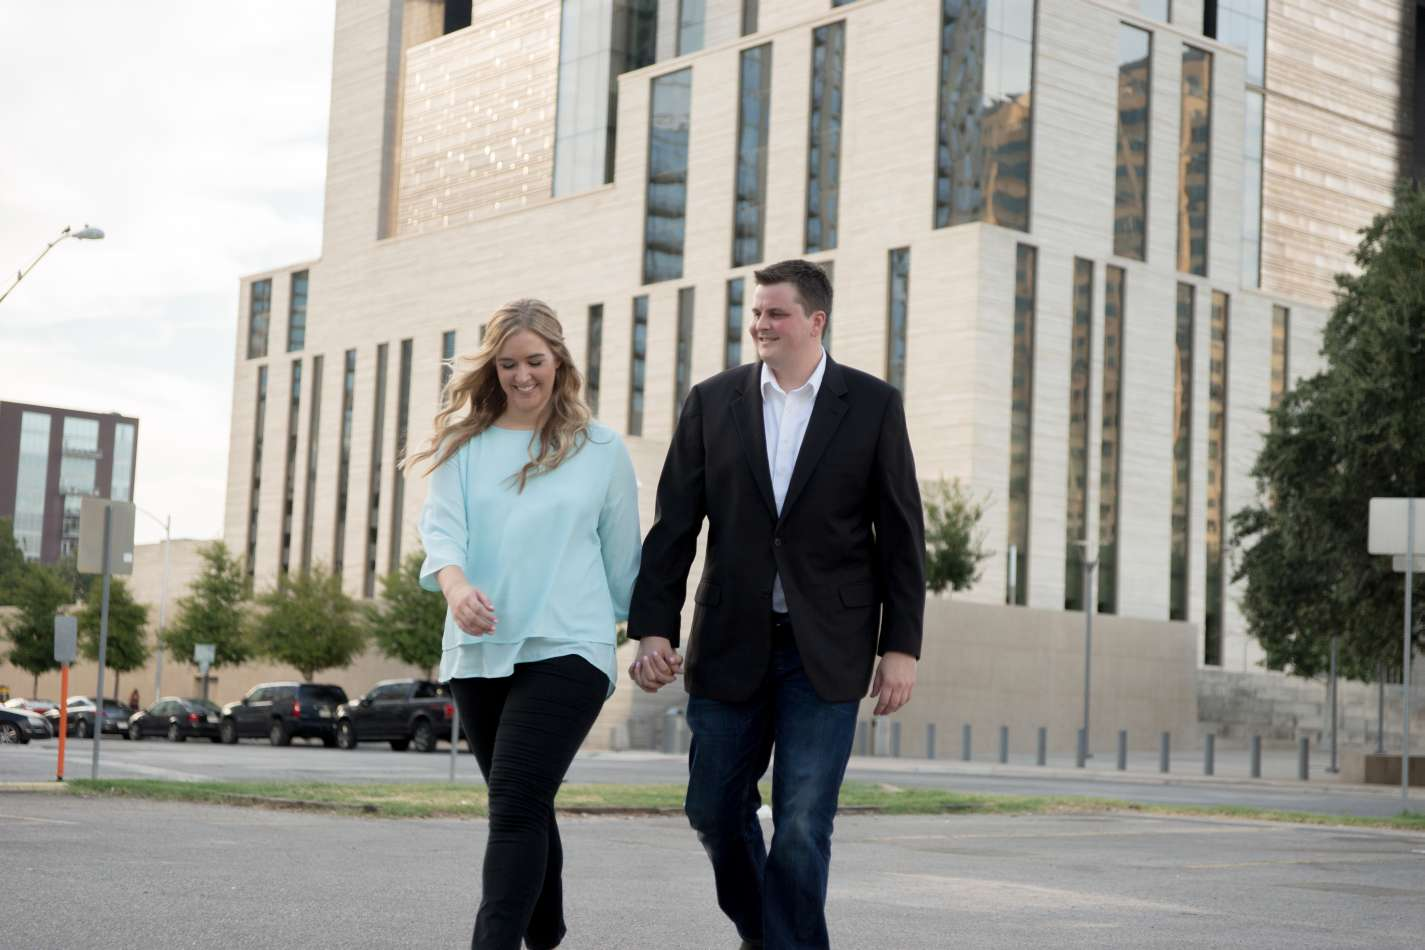 HighDot Studios - Jill and Sean - Engagement Session - Austin - Hope Outdoor Gallery - Long Center (18)